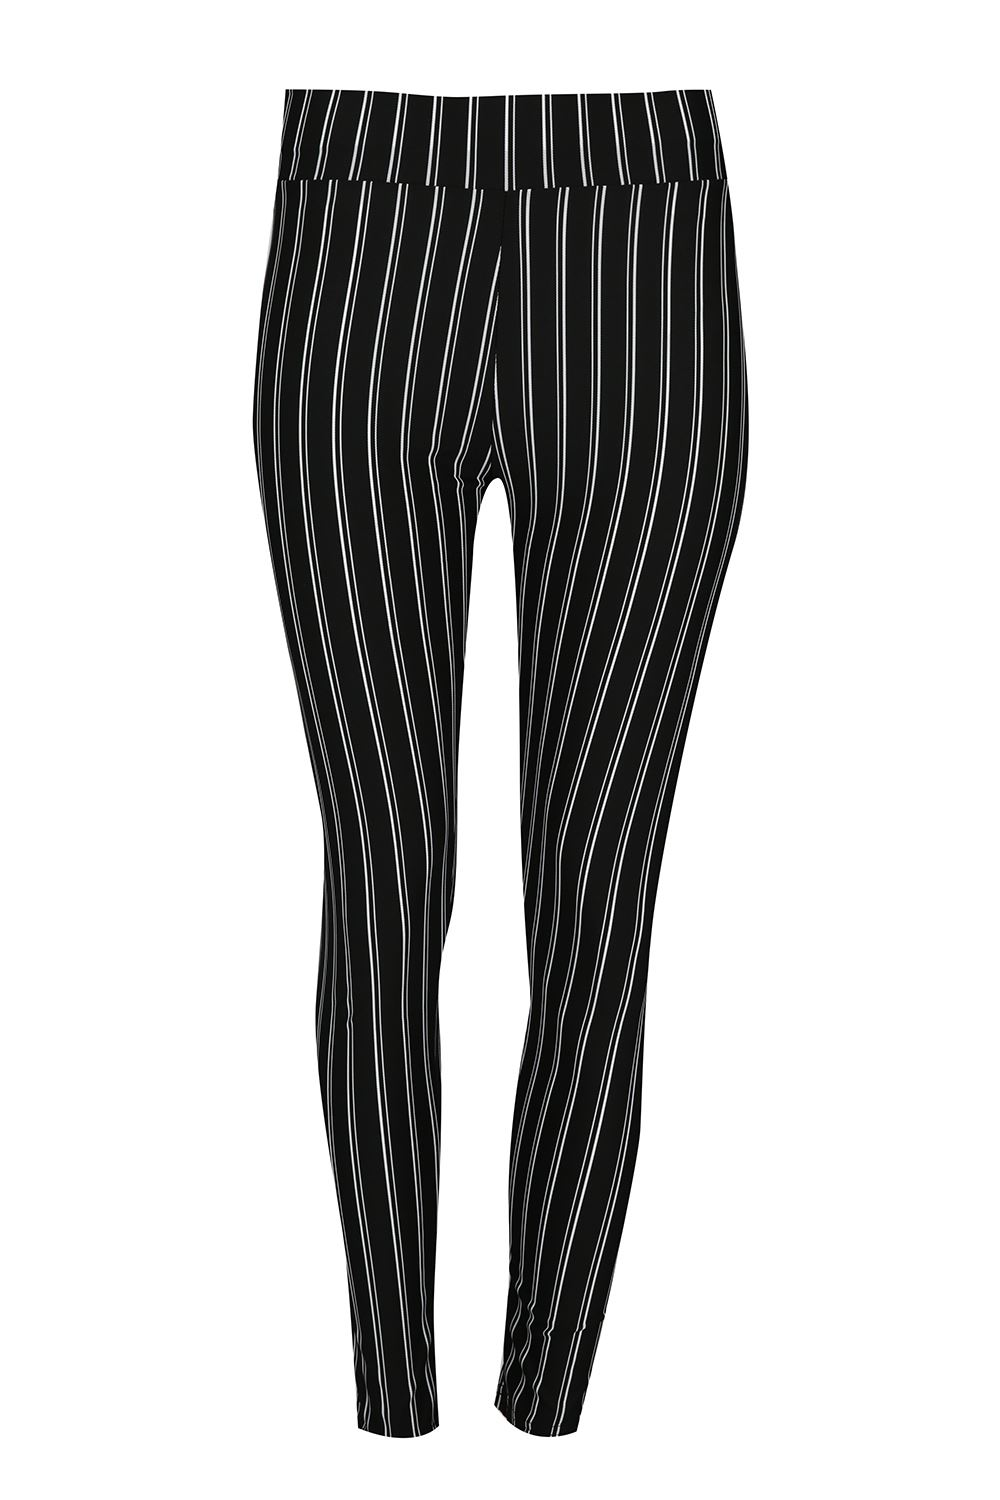 Ladies Striped Leggings. These leggings feature a long stripe print, a stretchy fit, and a lightweight feel. Approximately 41